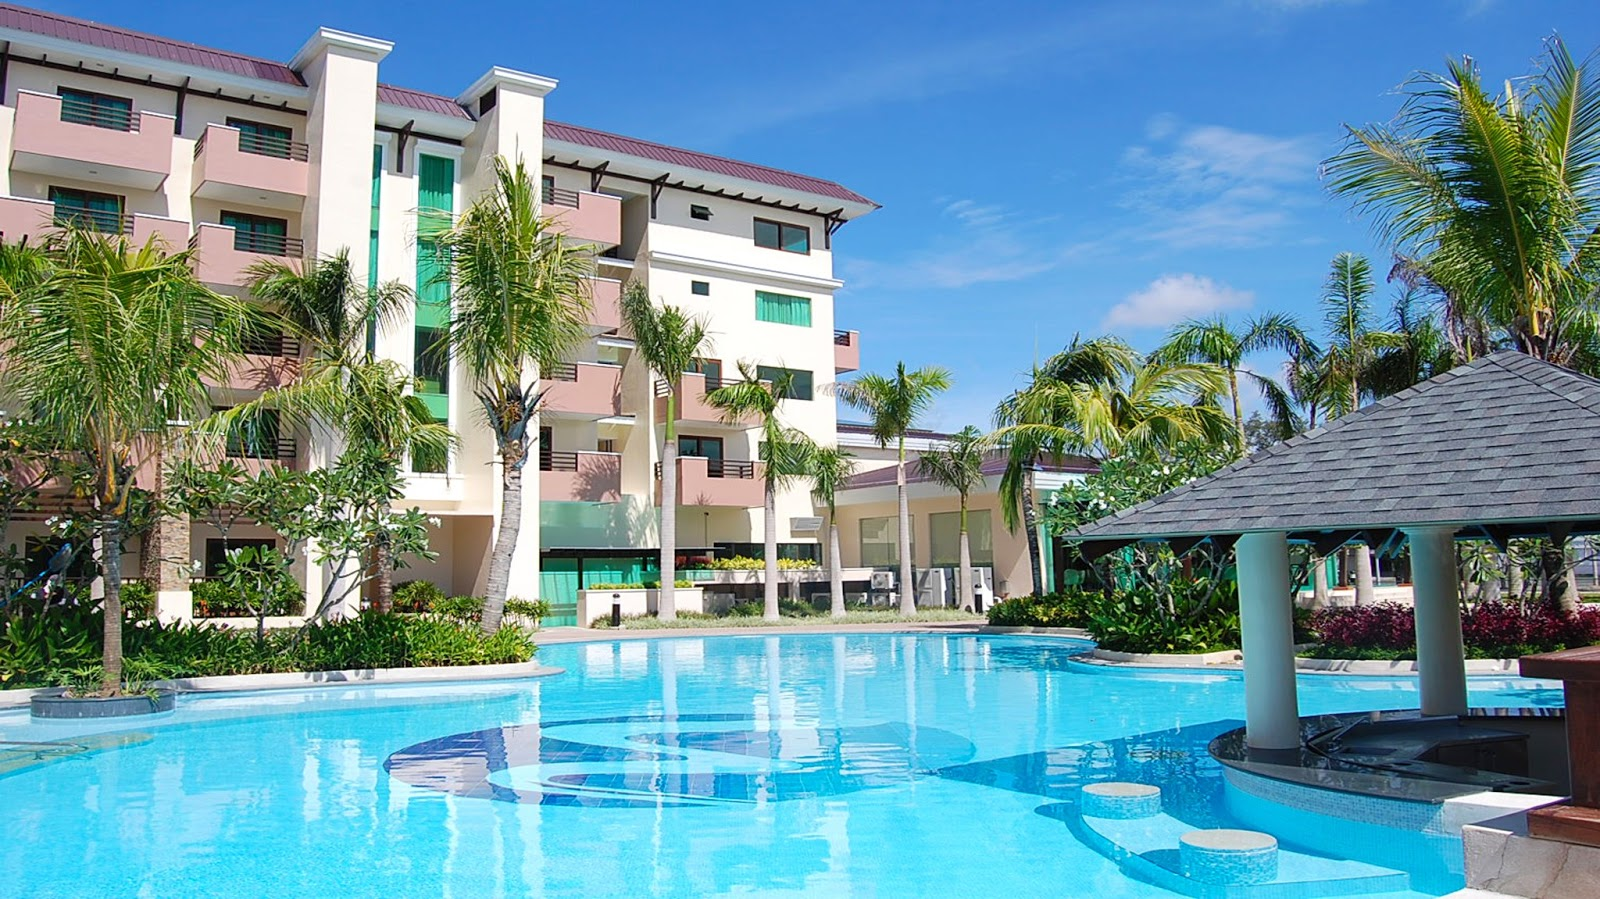 Hotel In Quezon City With Pool